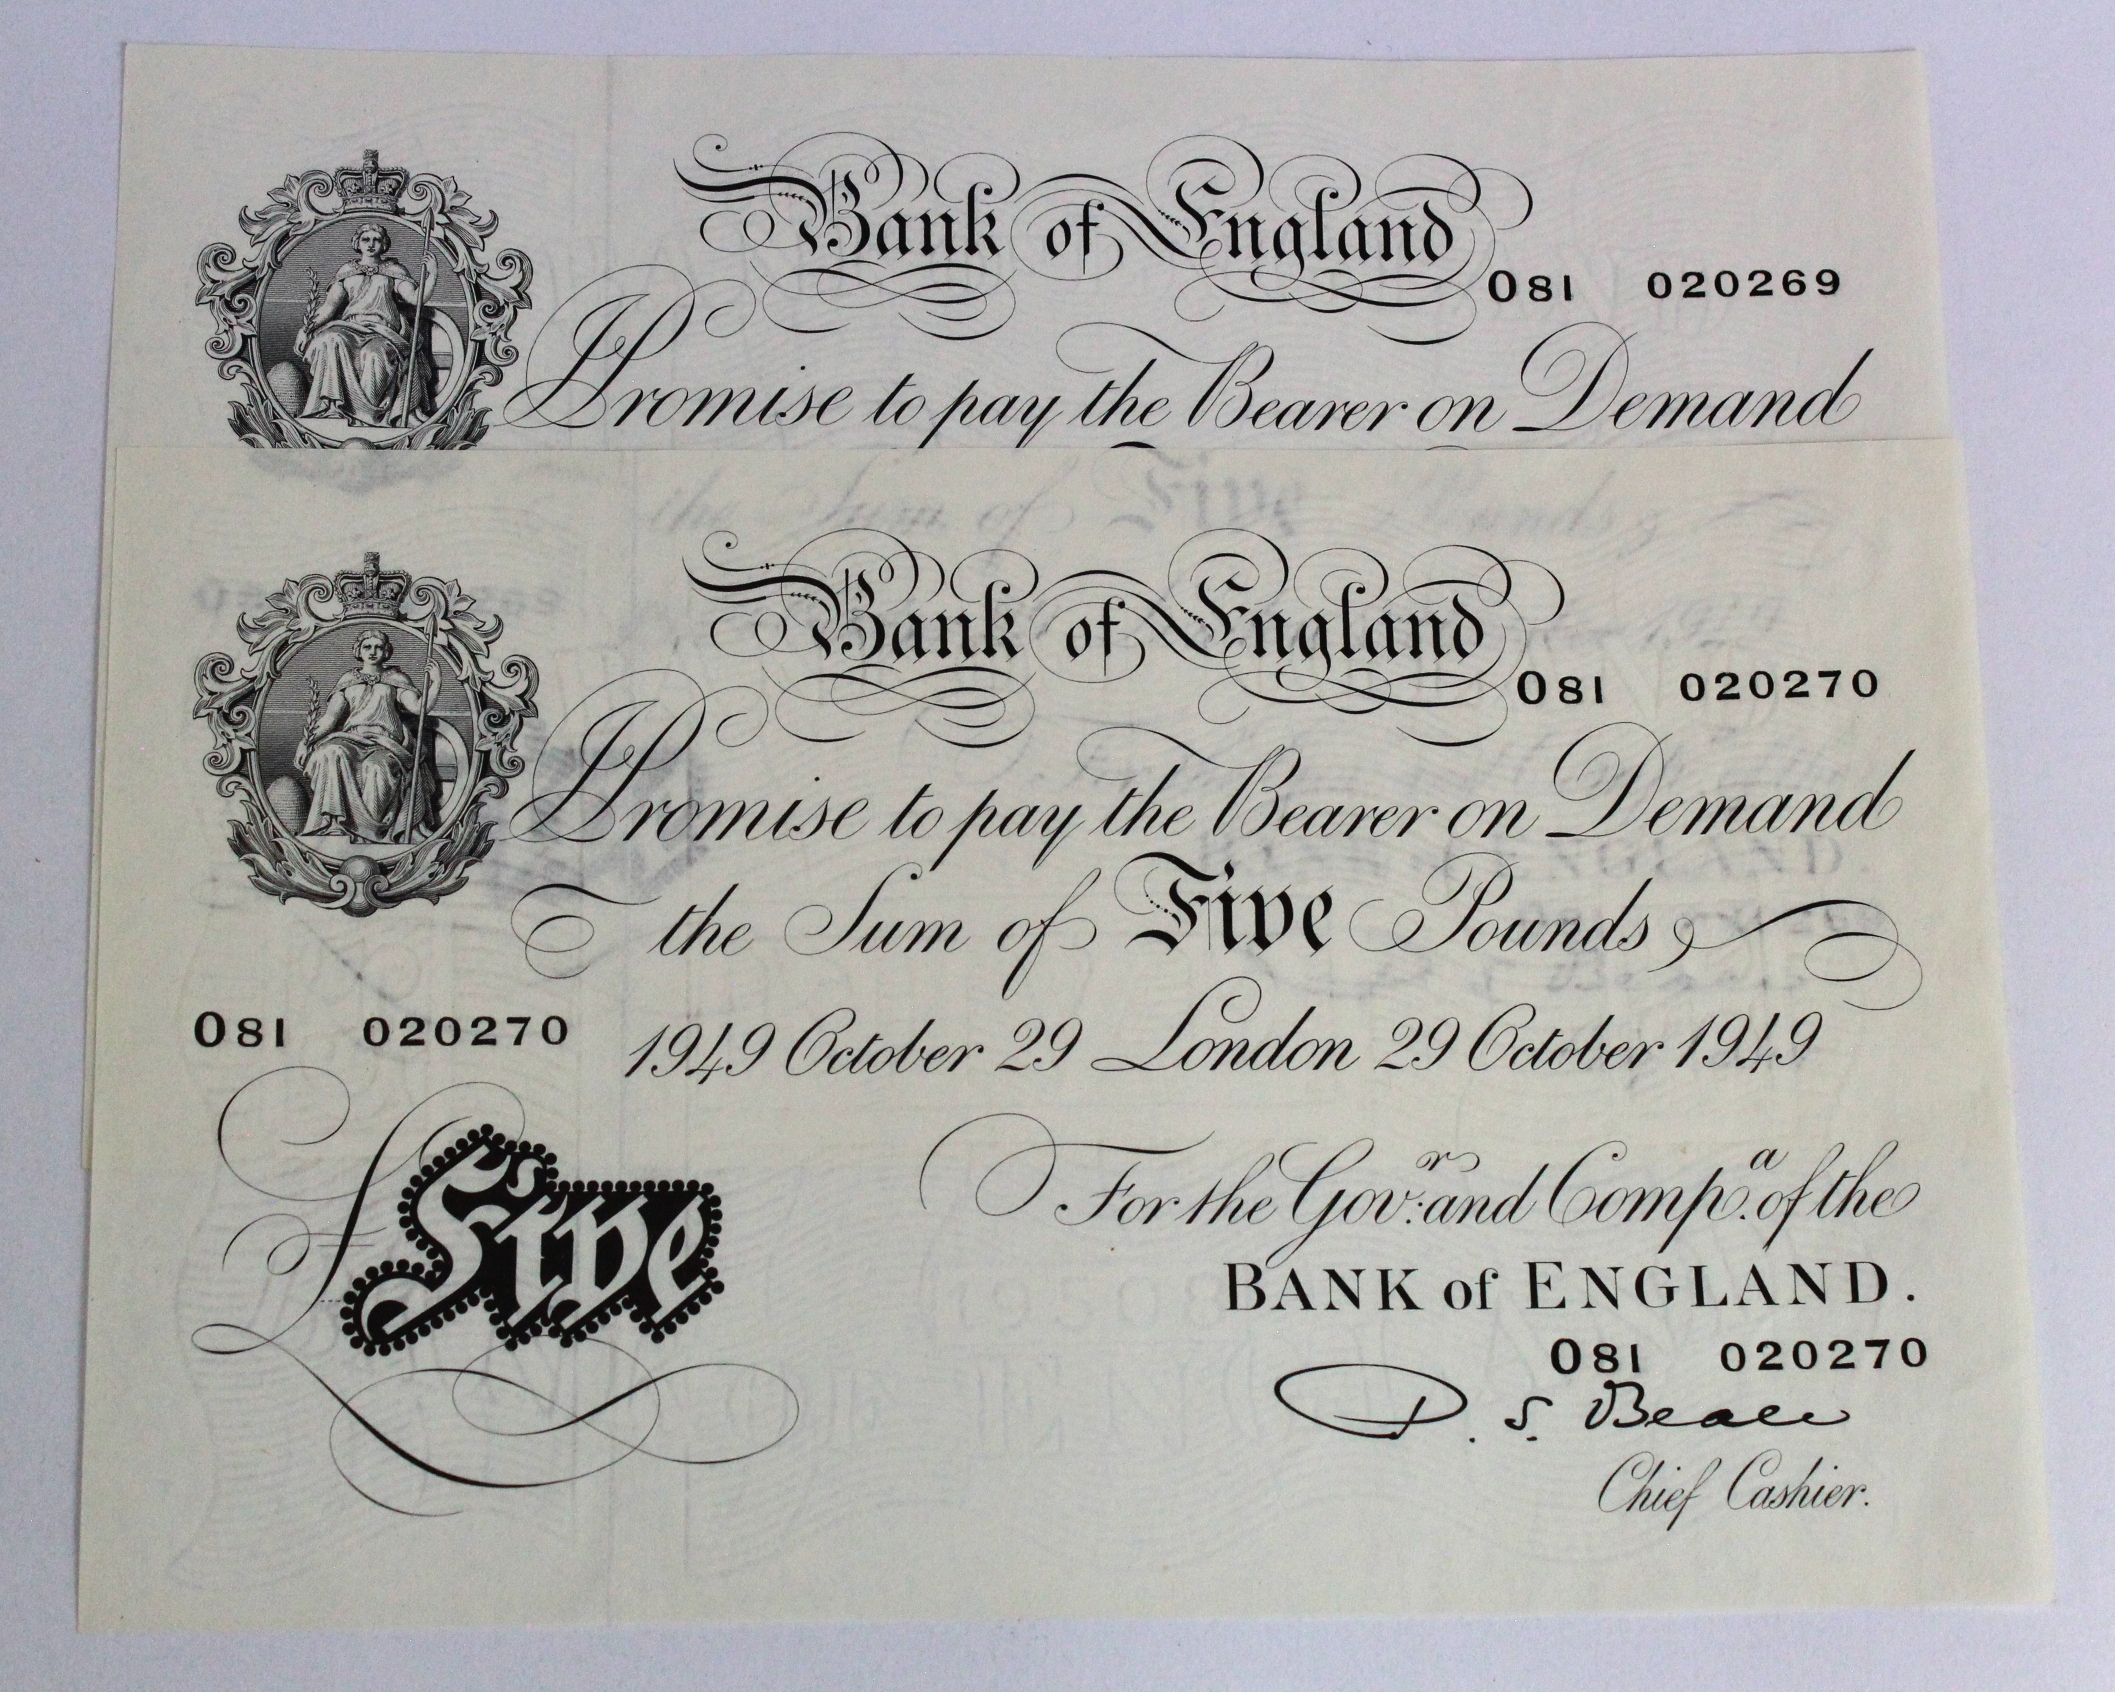 Beale 5 Pounds (2) dated 29th October 1949, a consecutively numbered pair, serial O81 020269 & O81